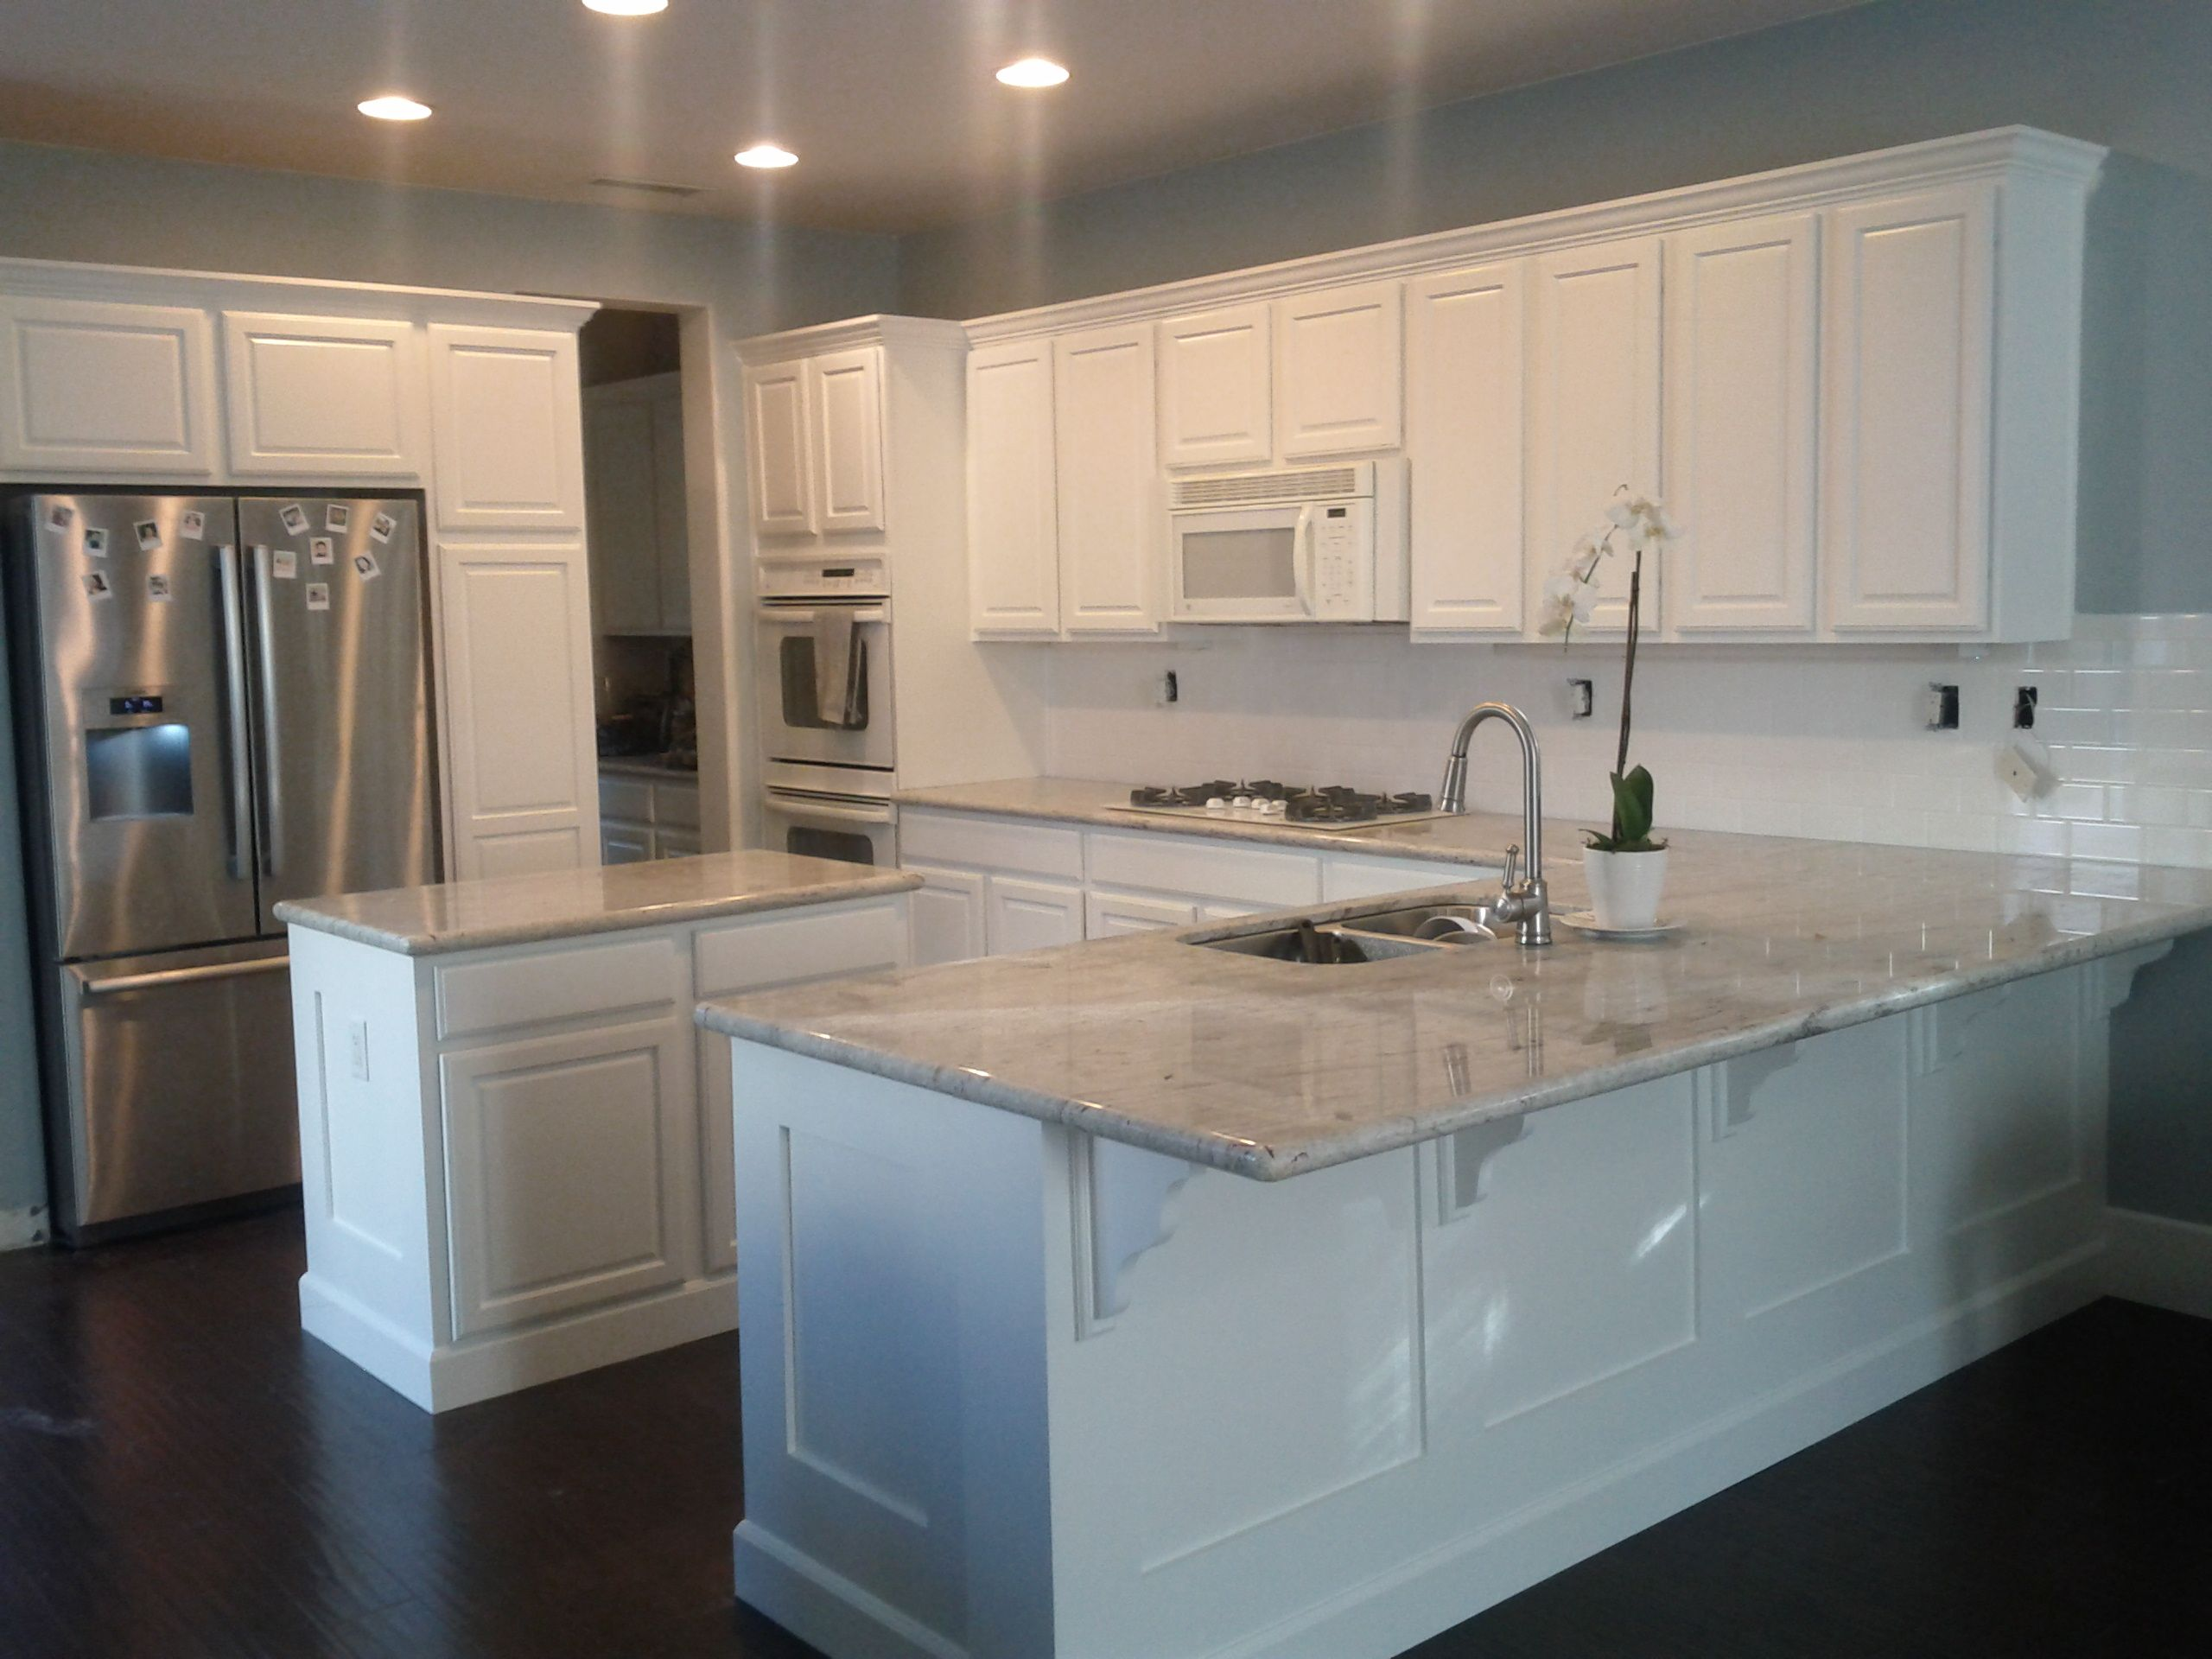 White Kitchen Granite Countertops 17 Best Ideas About River White Granite On Pinterest Light